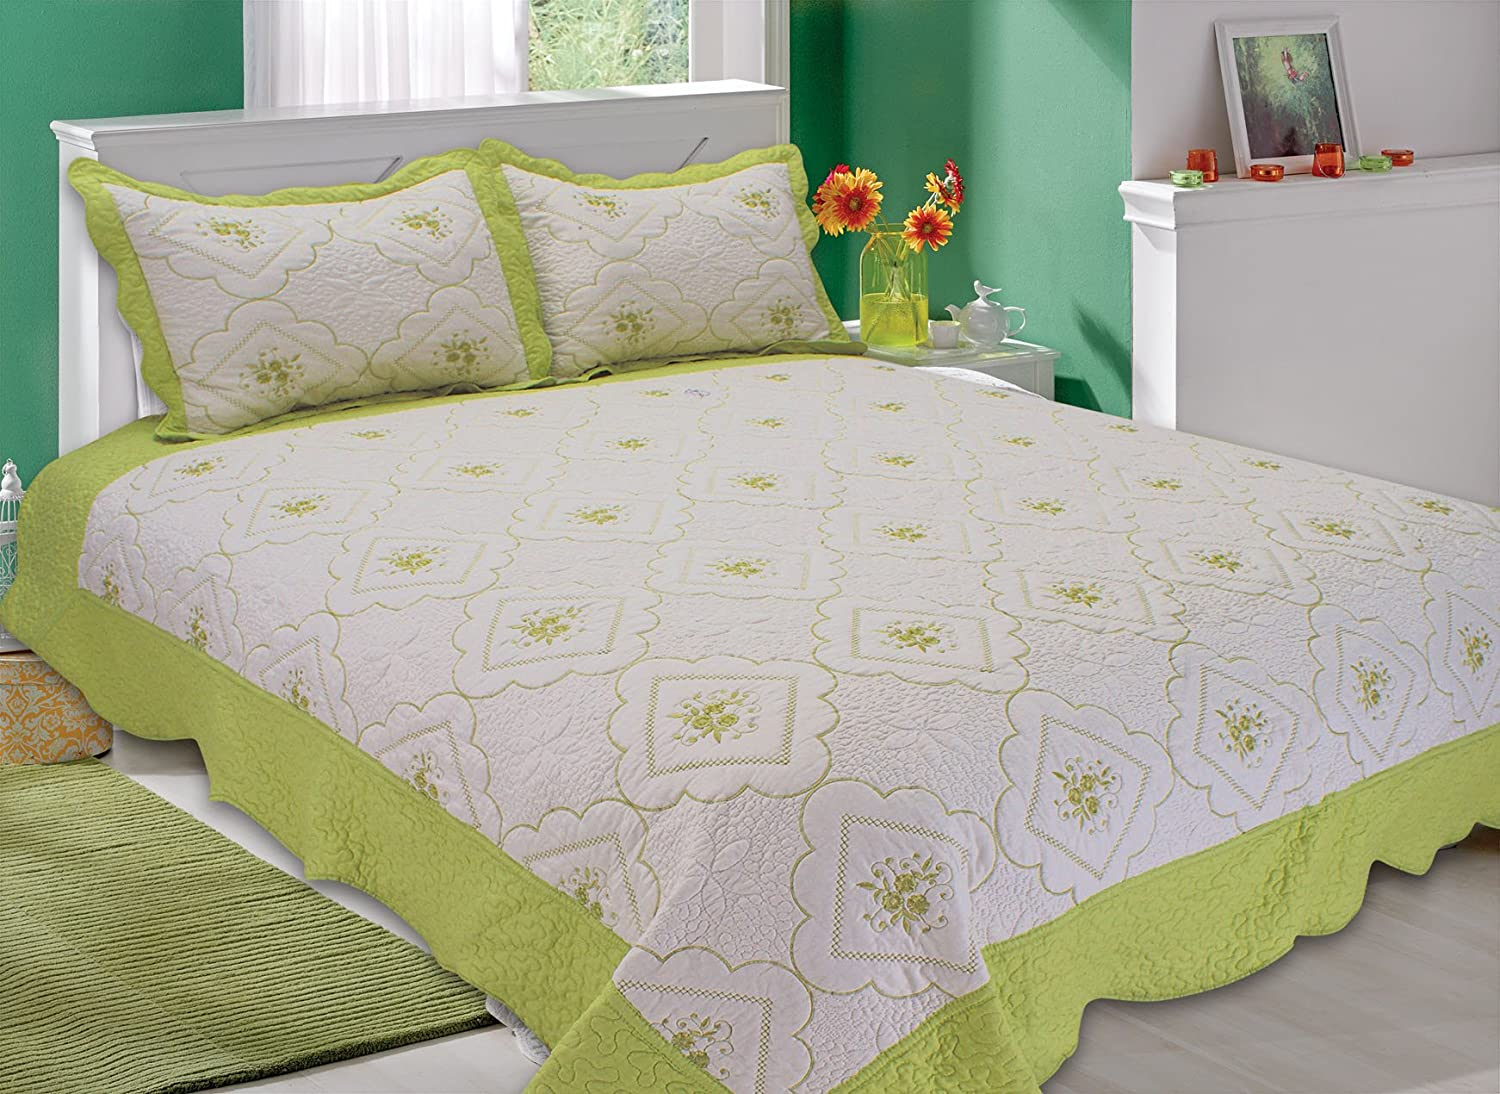 3-piece Reversible Bedspread/ Coverlet / Quilt Set lime green